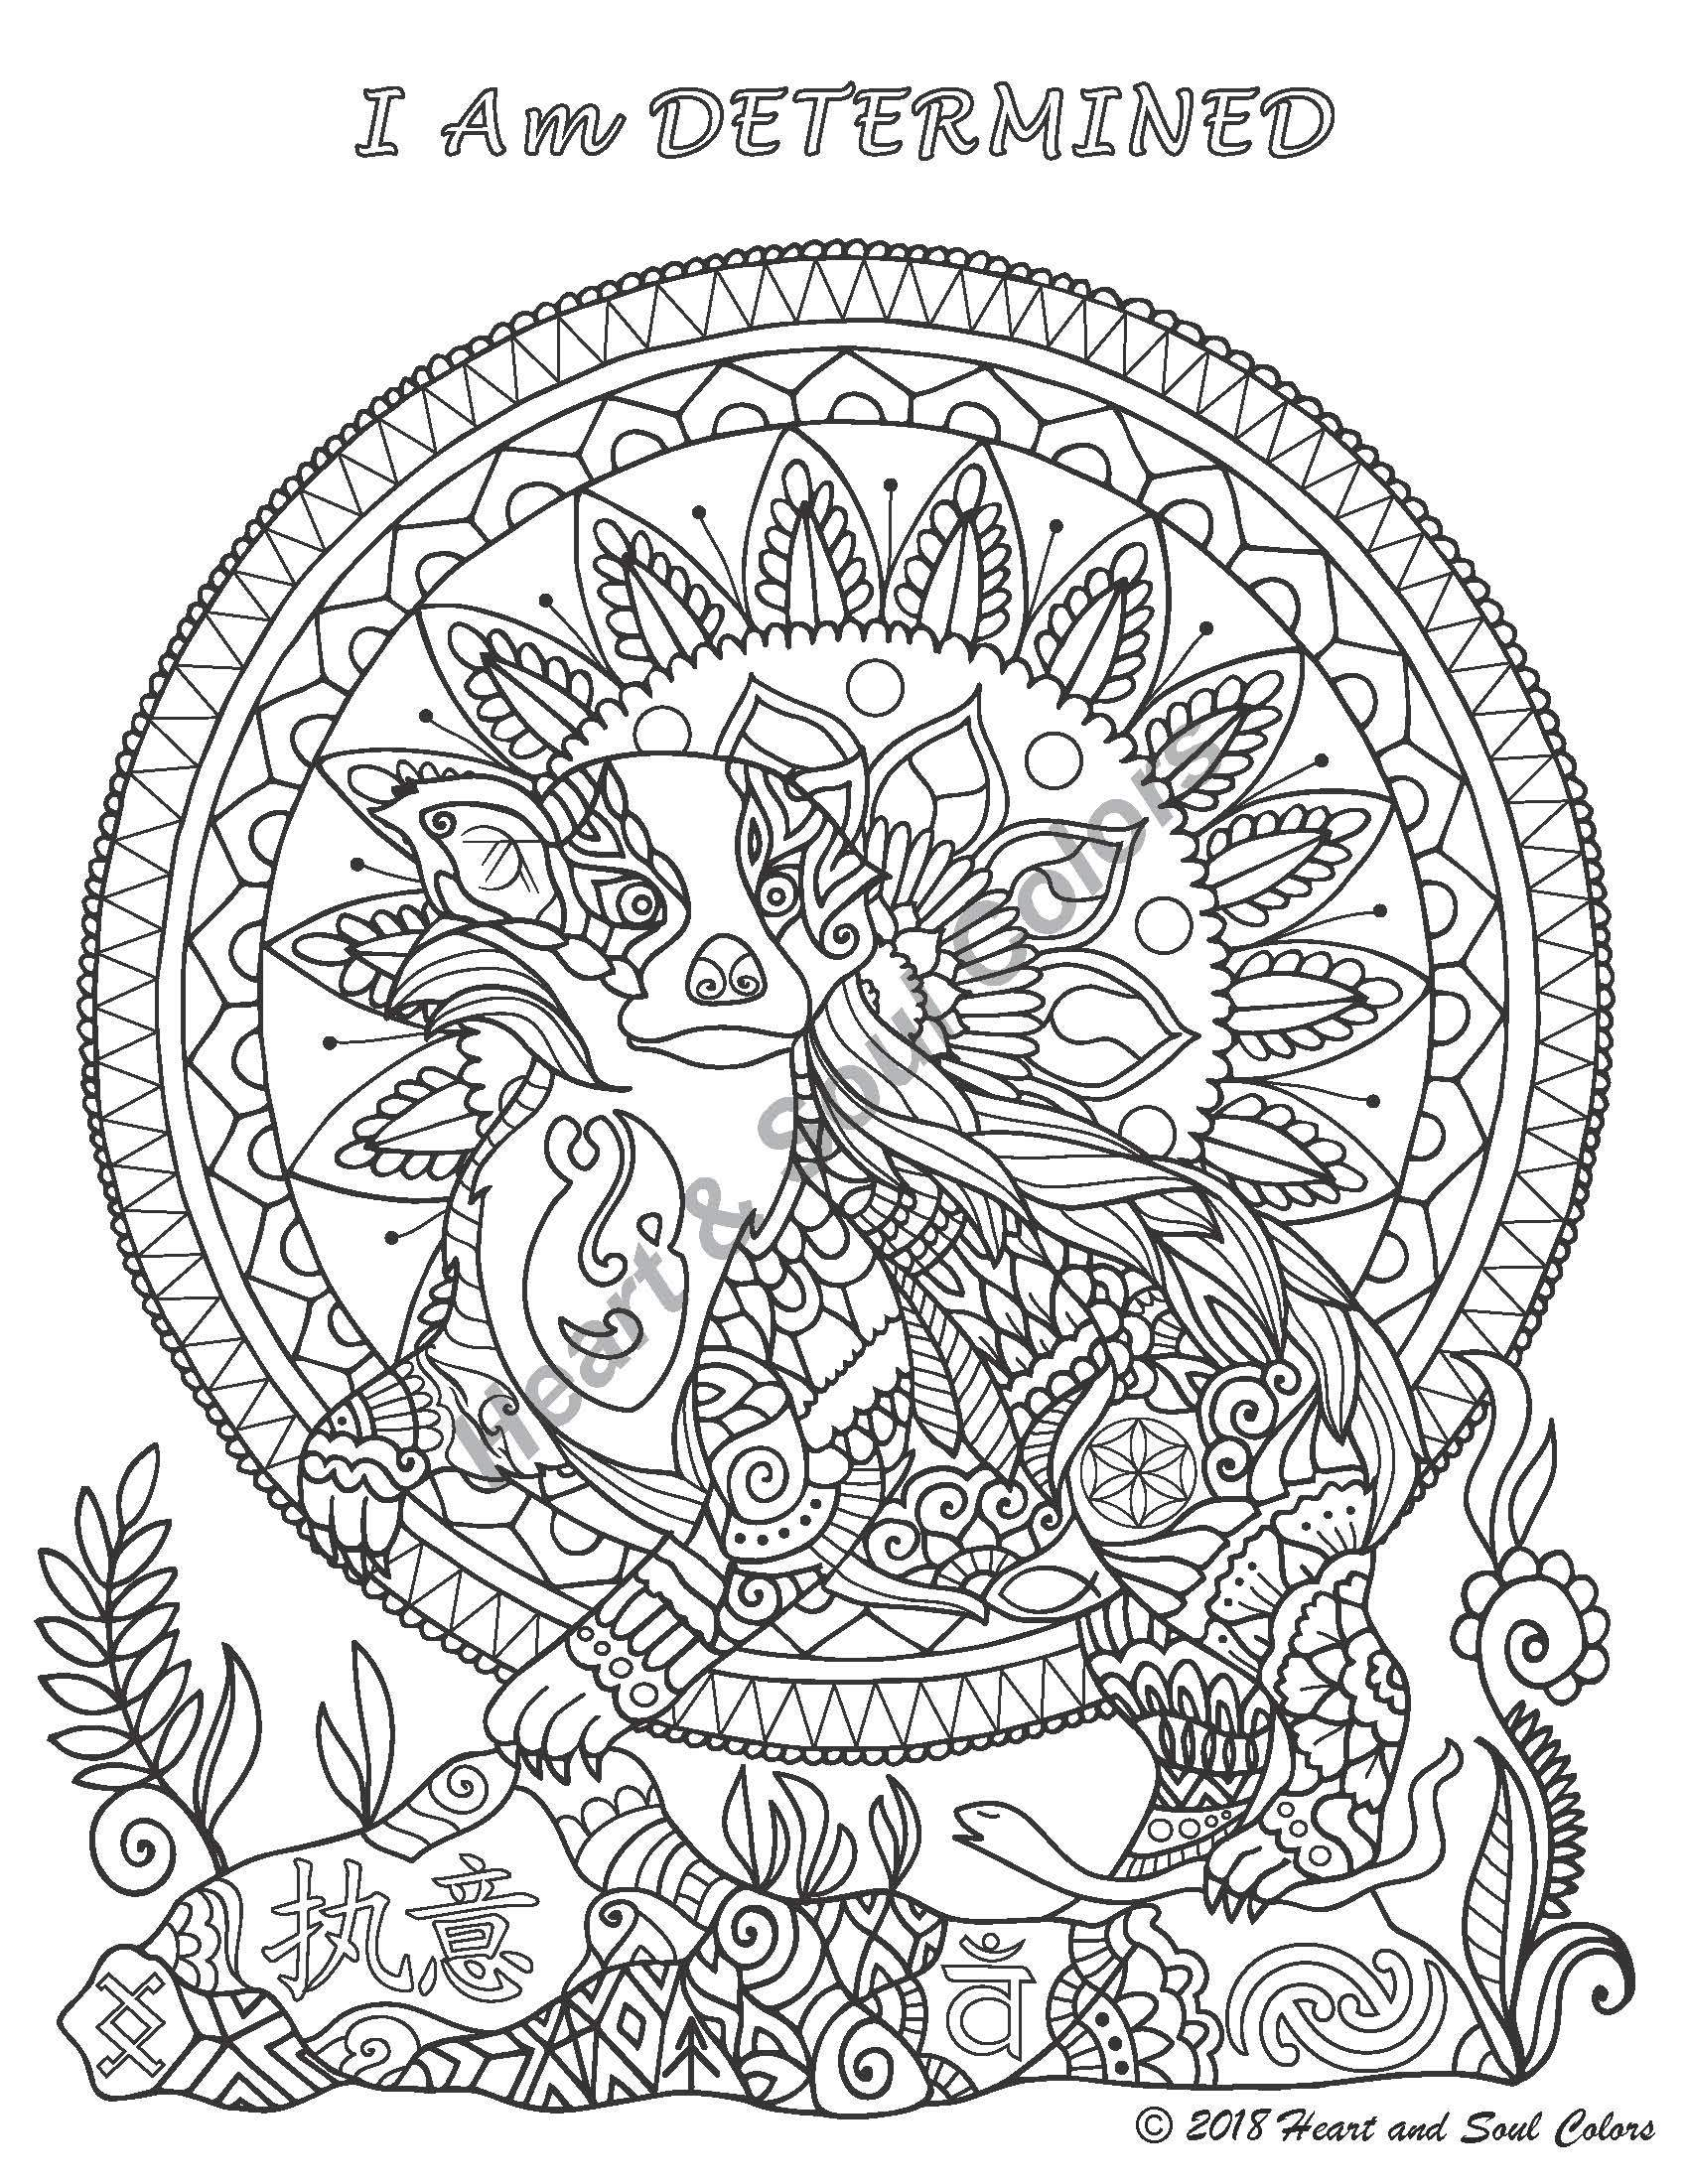 I Am DETERMINED Badger spiritual coloring design, including sacred geometry and powerful, hidden symbols